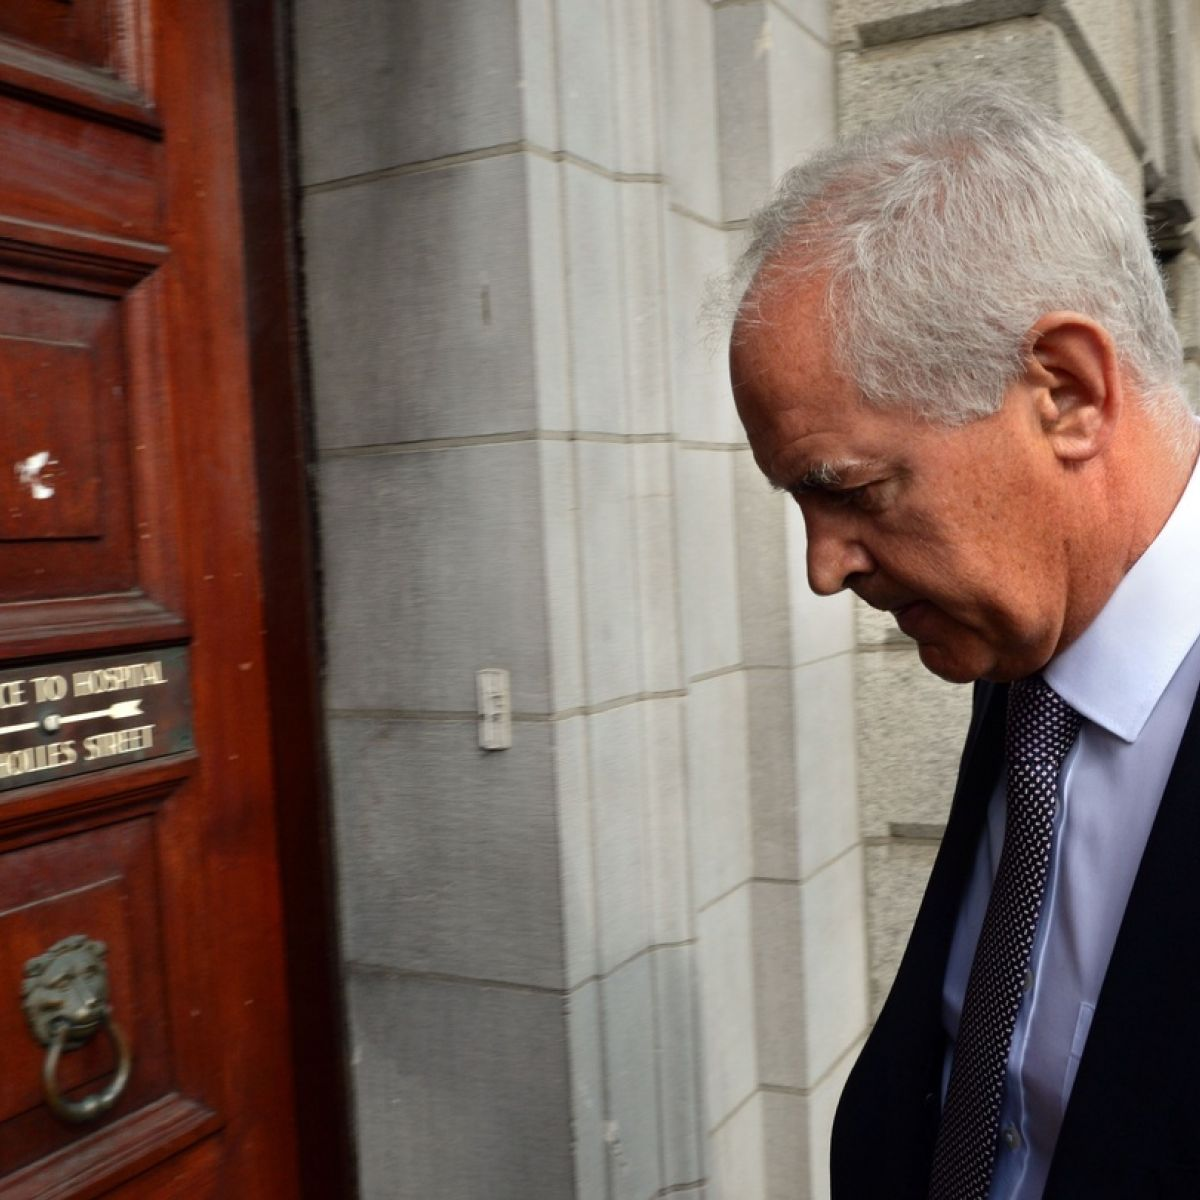 b61f0d9a Boylan resigns: says maternity hospital row like 'episode of Father Ted'